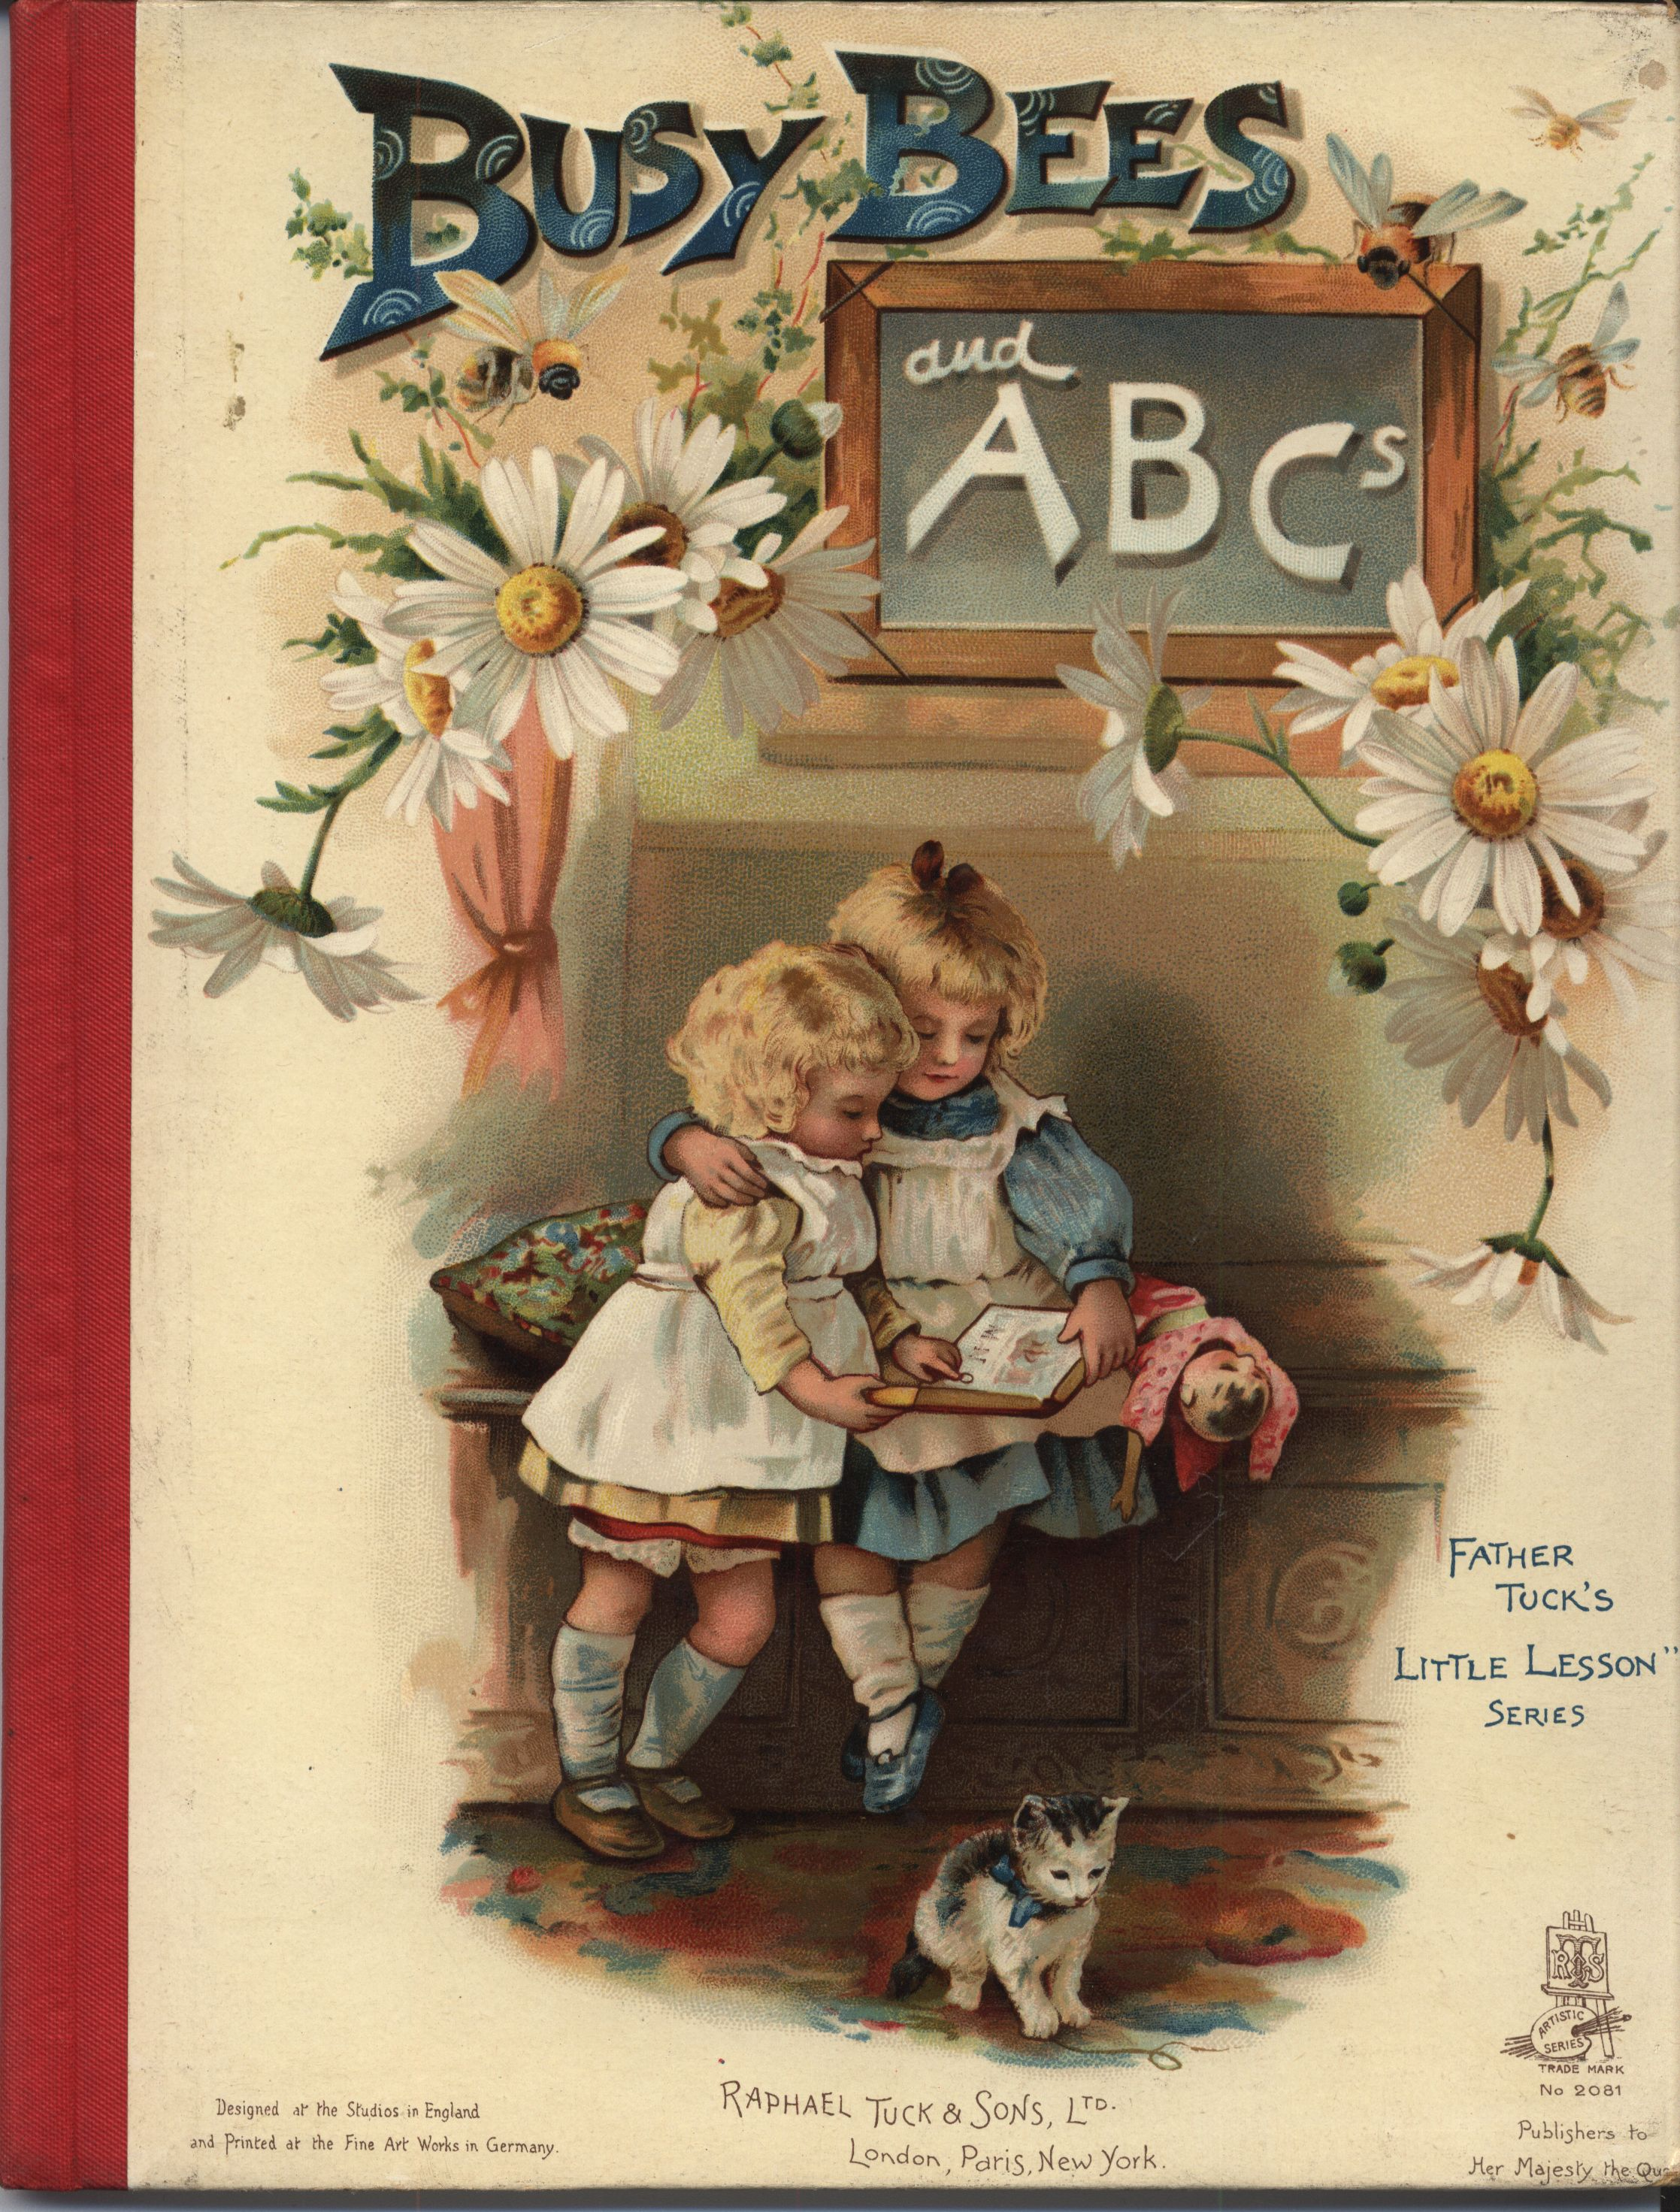 BUSY BEES AND ABCS